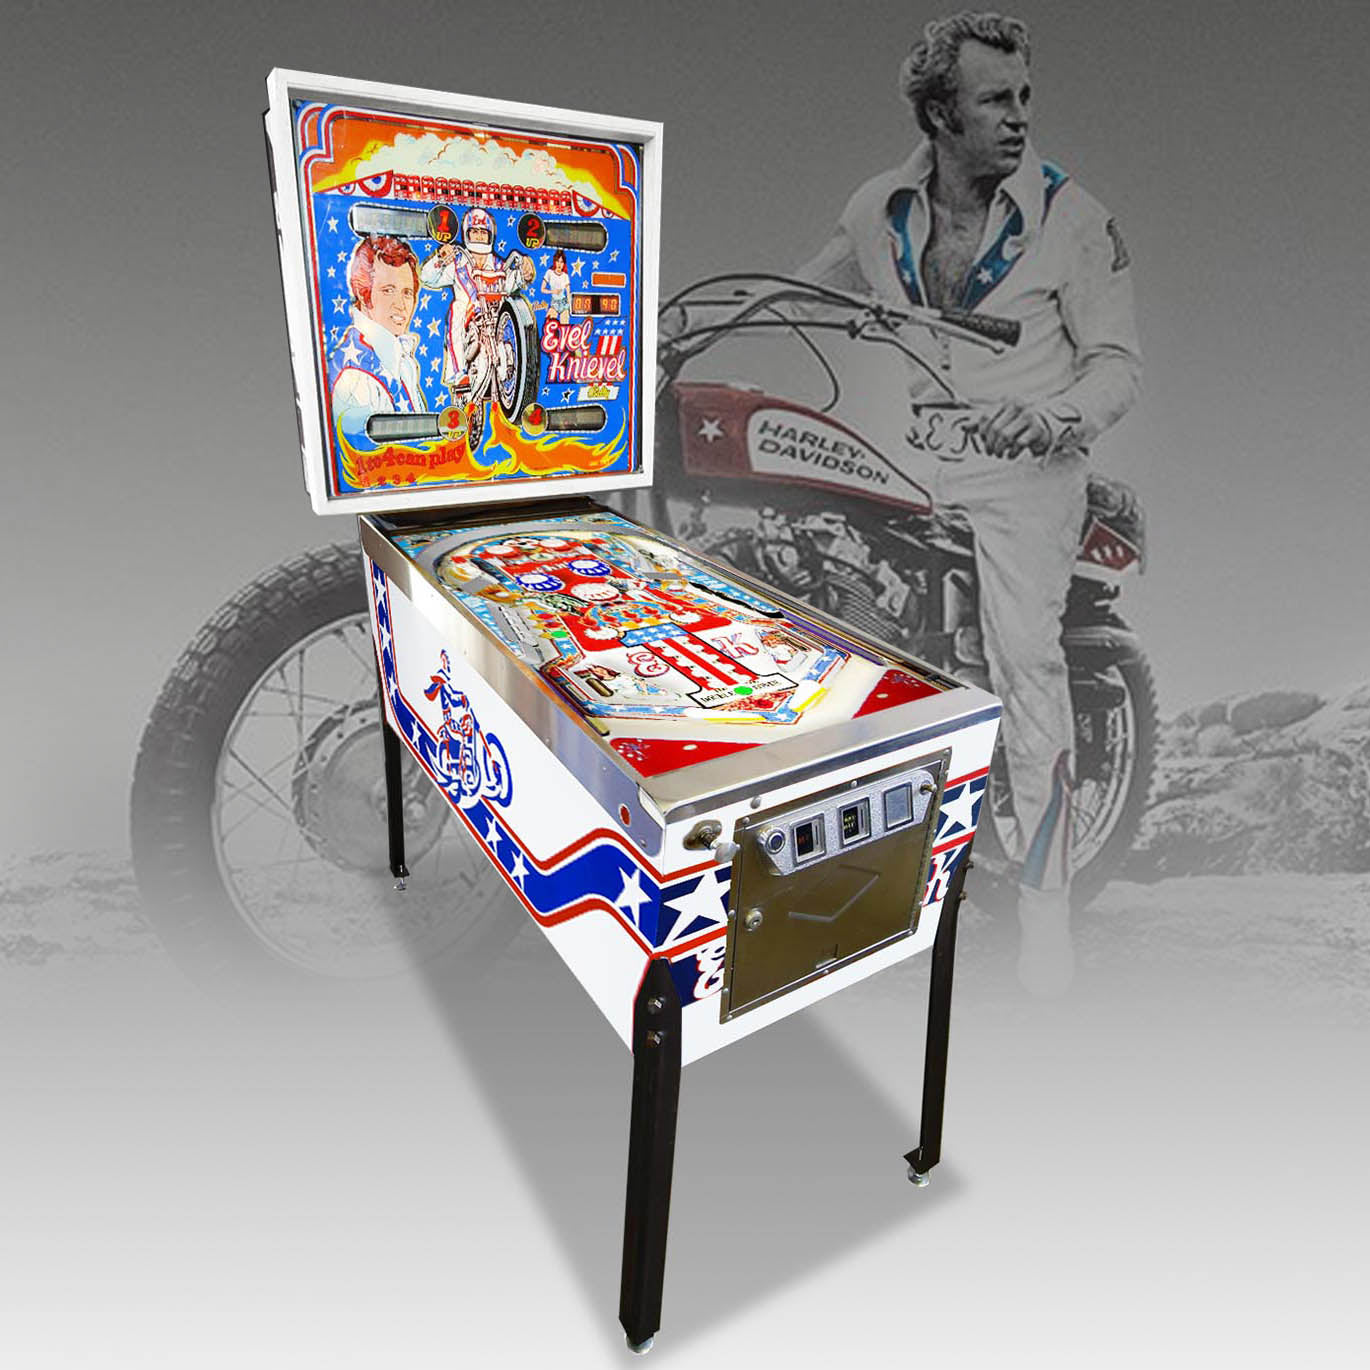 1977 Evel Knievel Pinball Machine by Bally